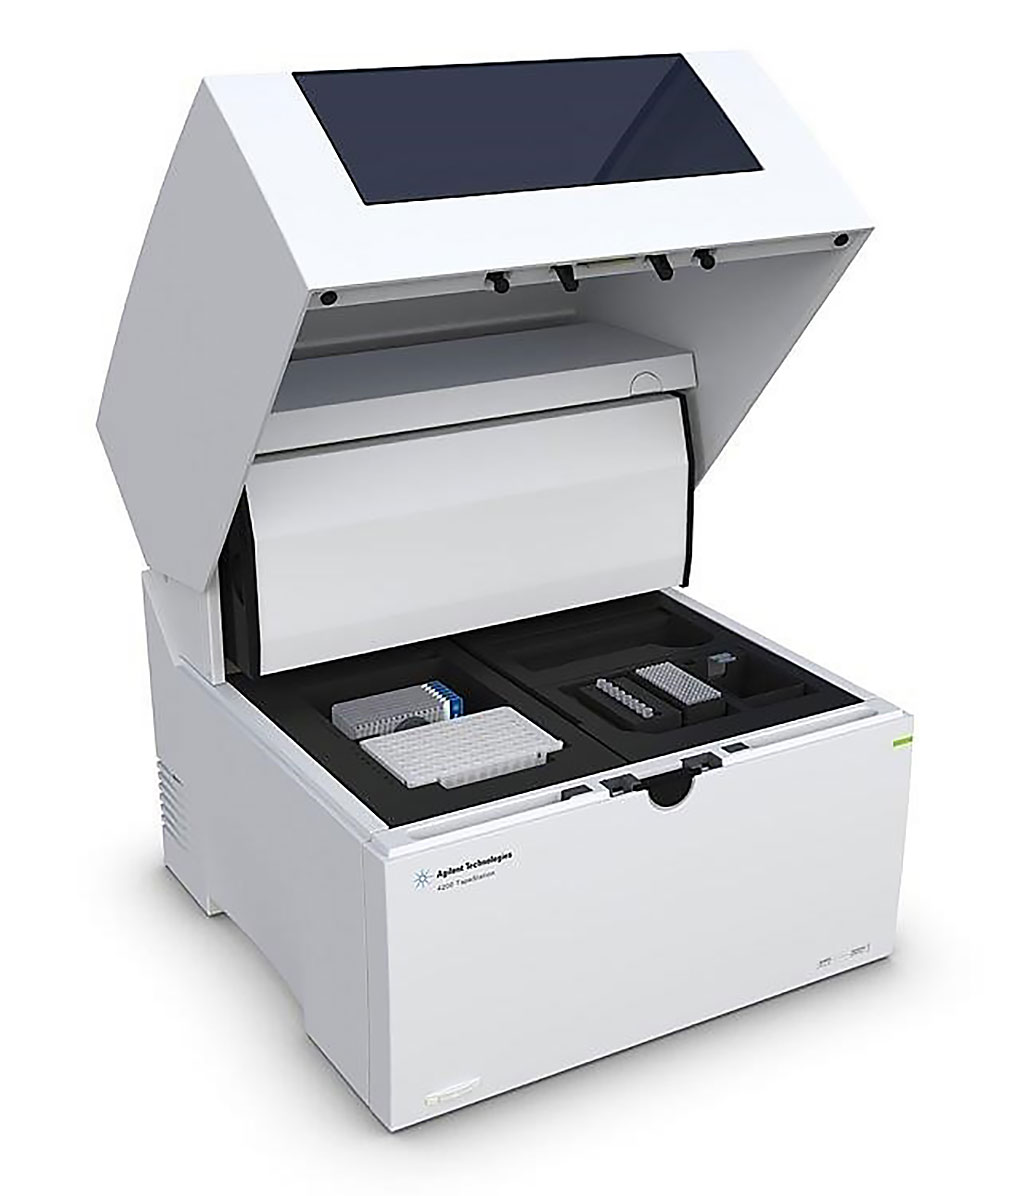 Image: The Agilent 4200 TapeStation system is an established automated electrophoresis tool for DNA and RNA sample quality control (Photo courtesy of Agilent Technologies).